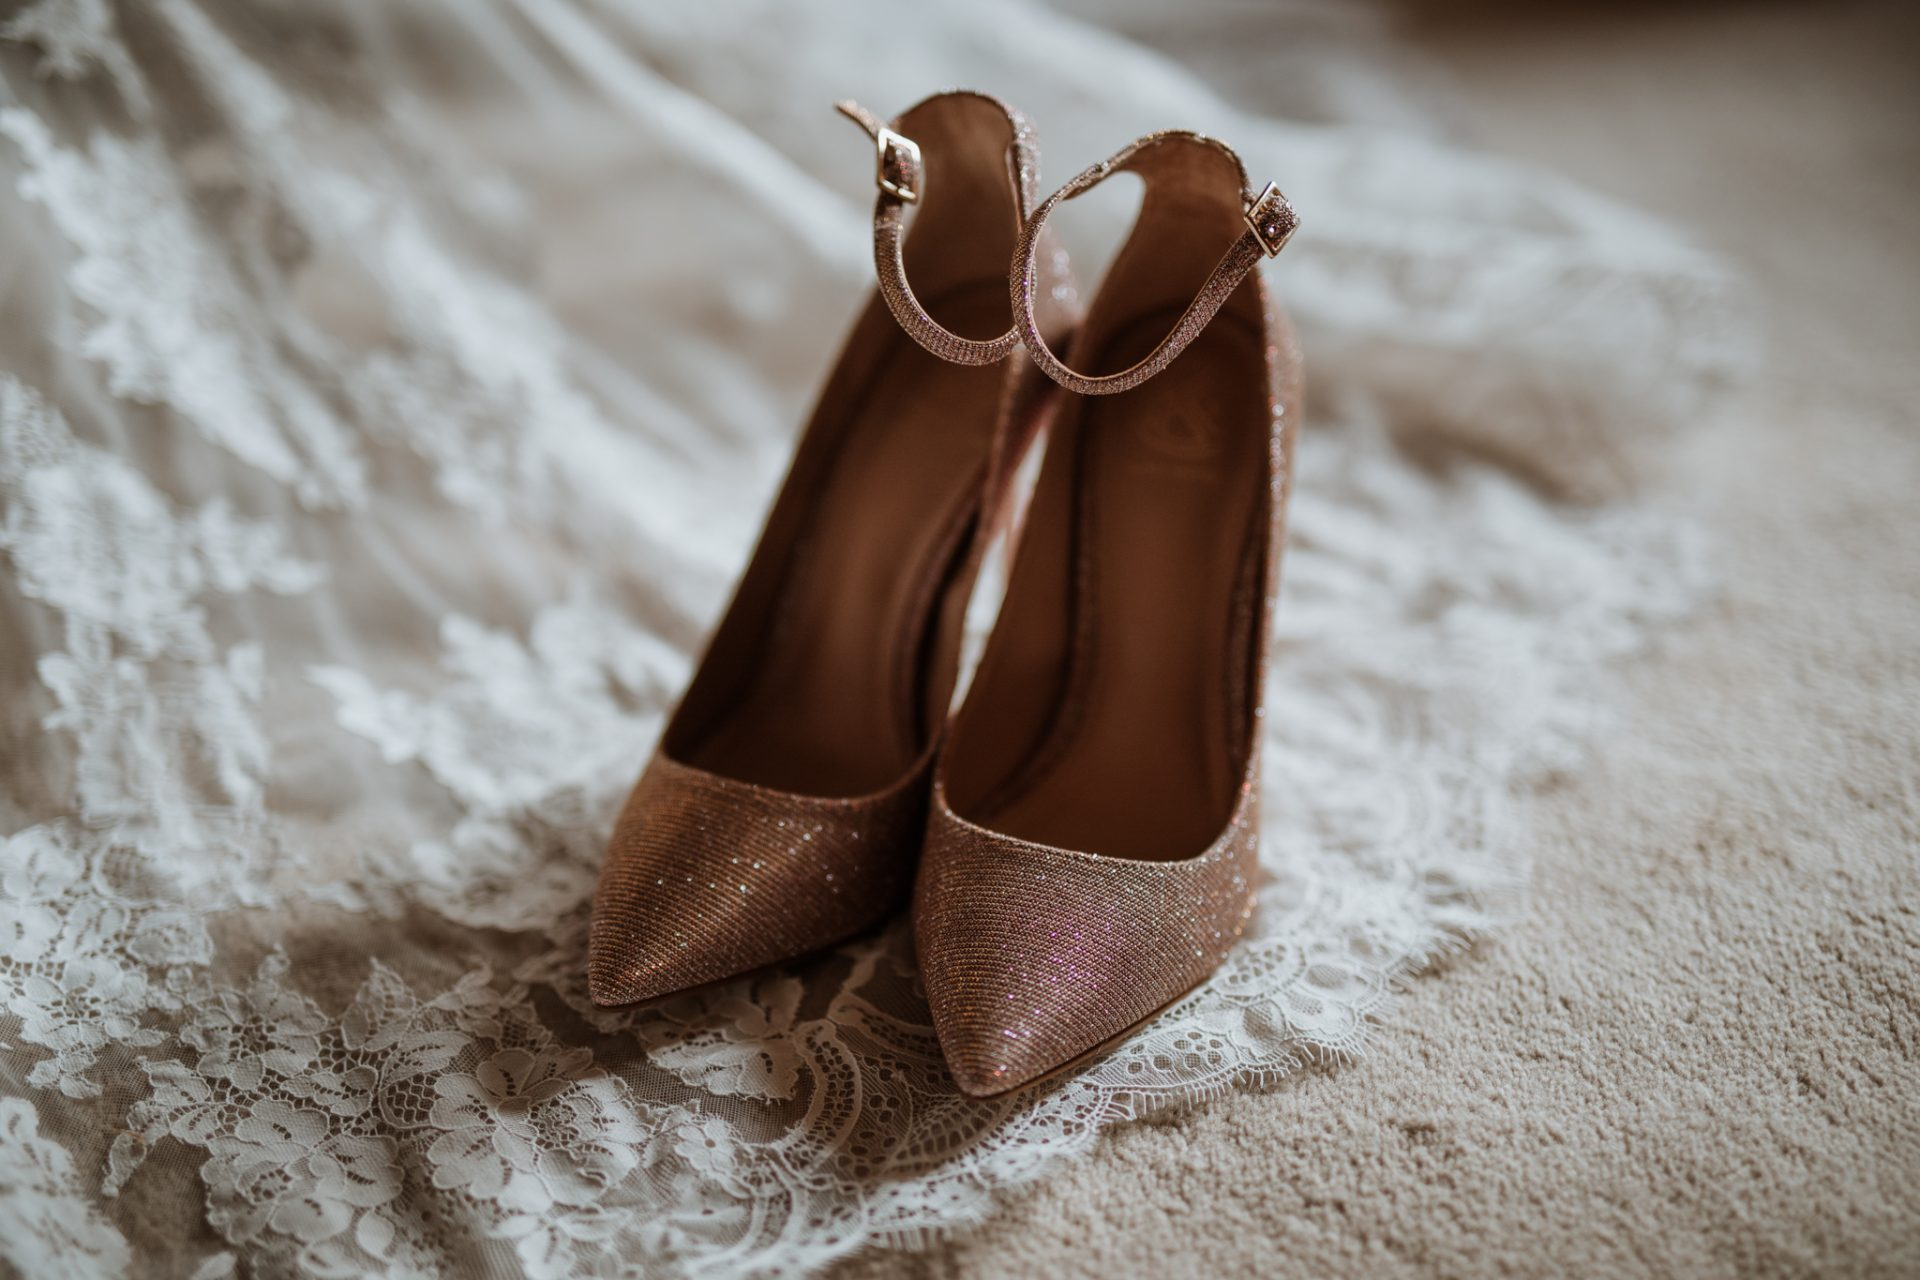 sparkly rose gold wedding shoes on lace wedding dress